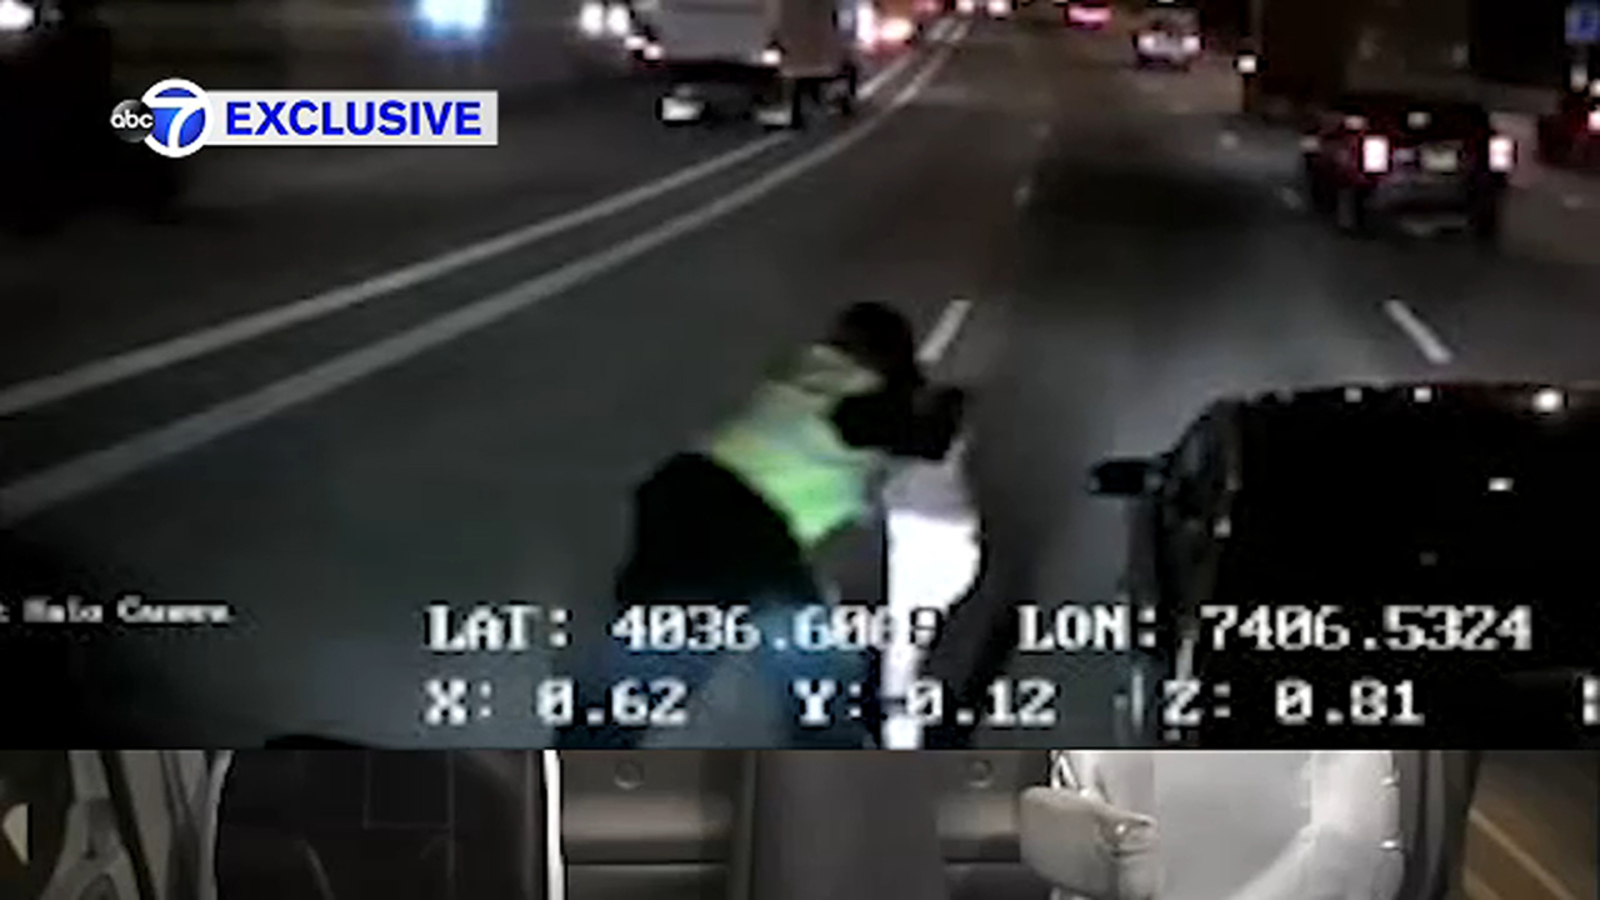 Search for driver who damaged tractor trailer with bat in Staten Island road rage incident